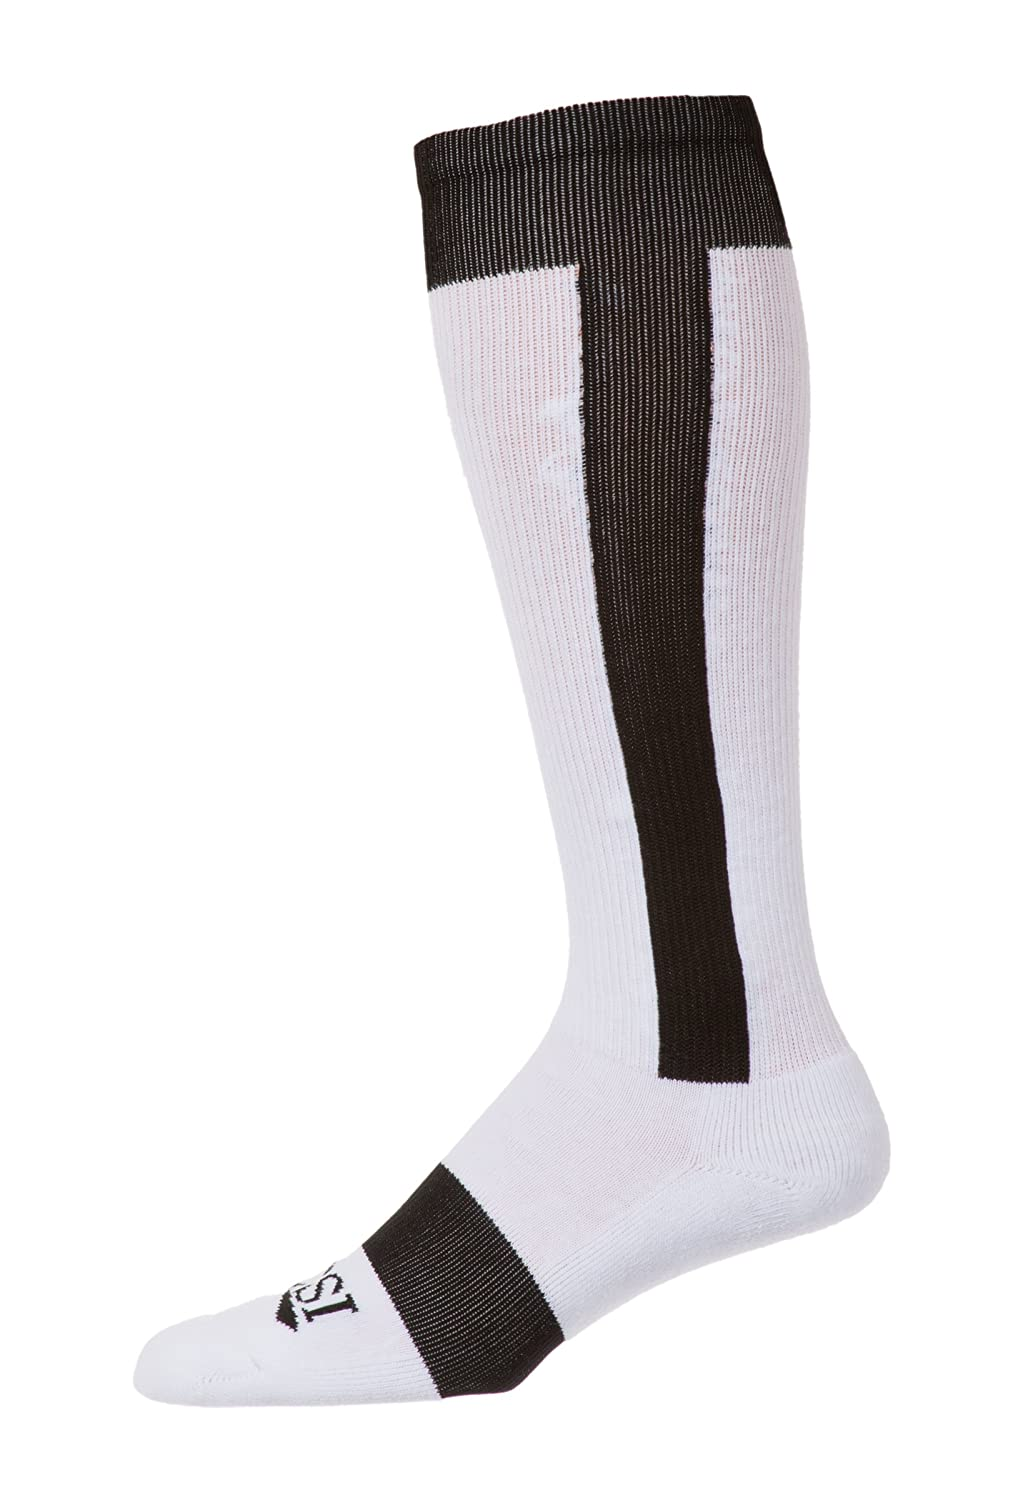 CSI Cotton Striped Baseball knee High Sock Made in The USA